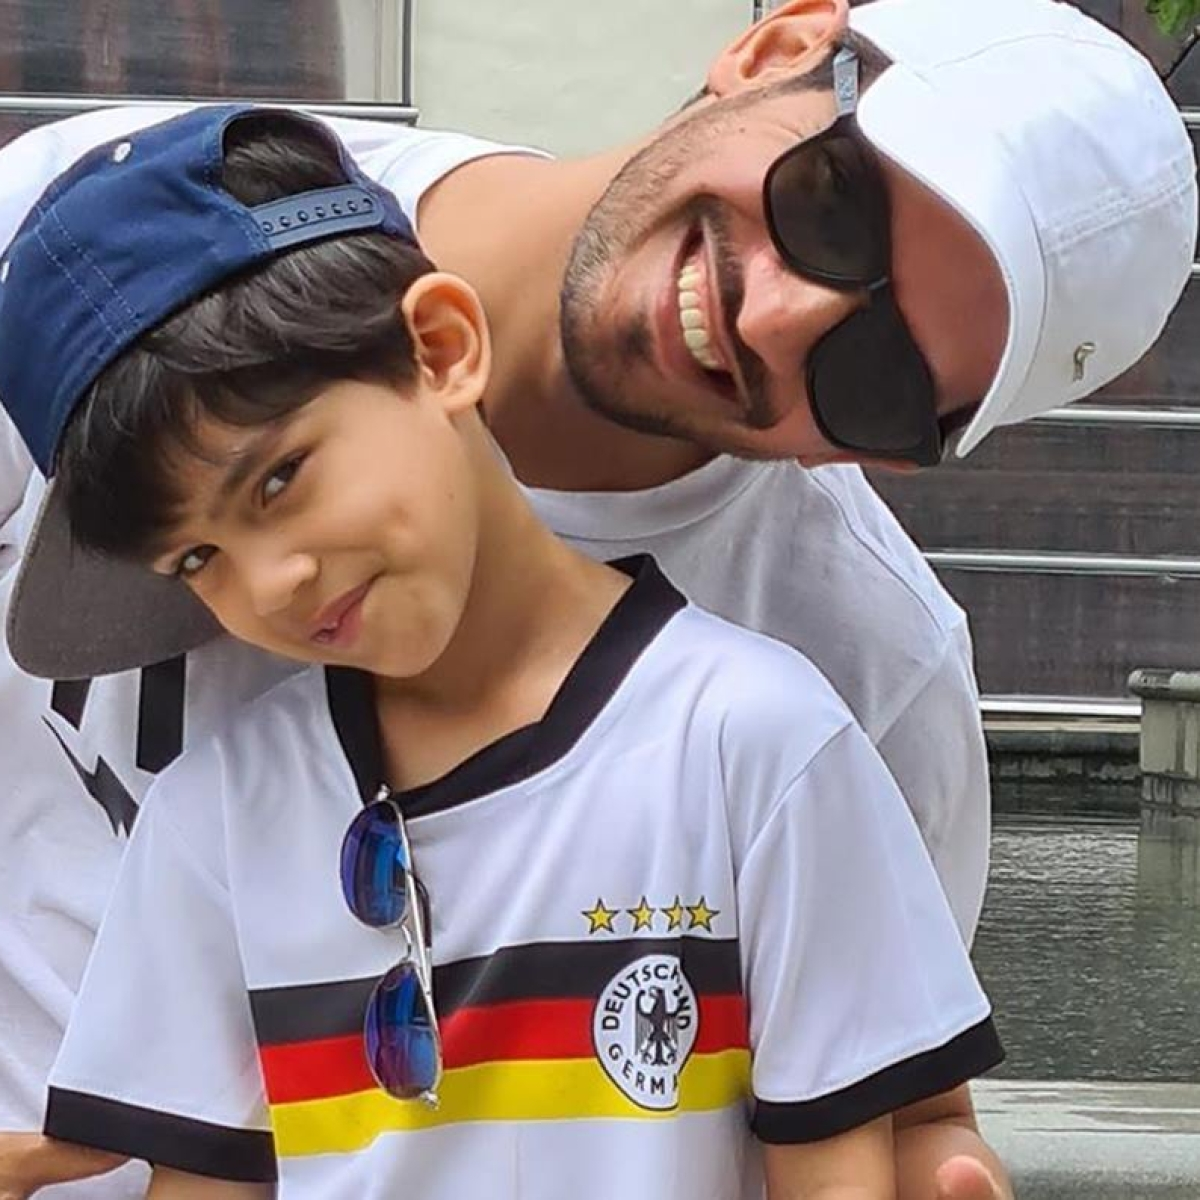 After wife, Arjun Bijlani's 5-year-old son also tests positive for COVID-19